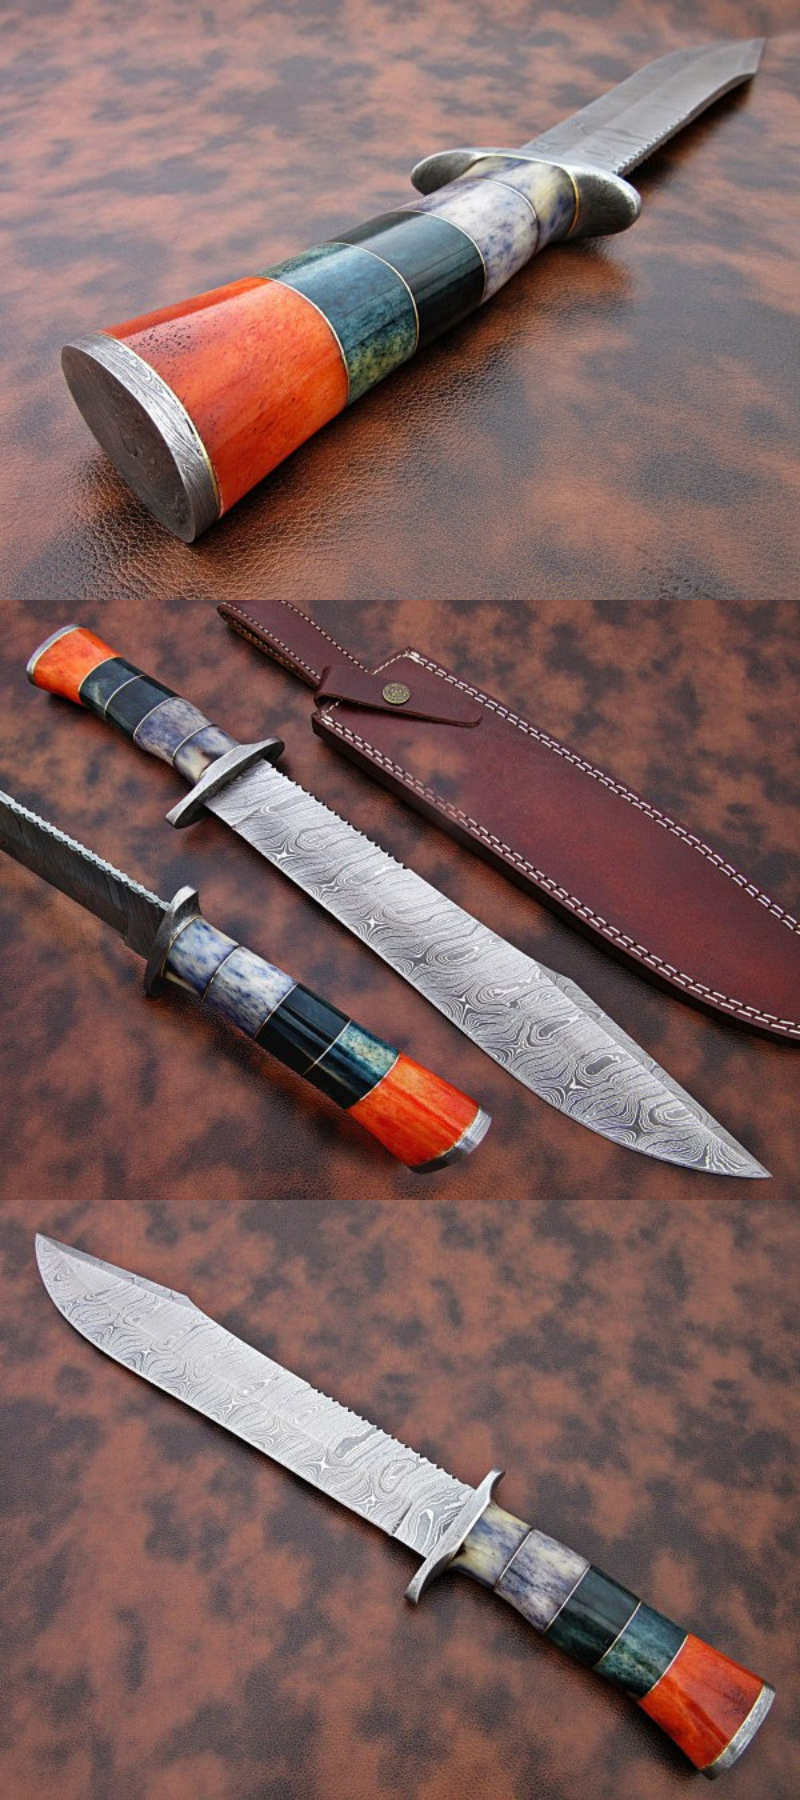 Knives Hunting Are Also Called Hunting Knives Which Are Very Popular For Fishing Outdoor Camping Hunting Survival Knives Or Hunting Knife Knife Bowie Knife